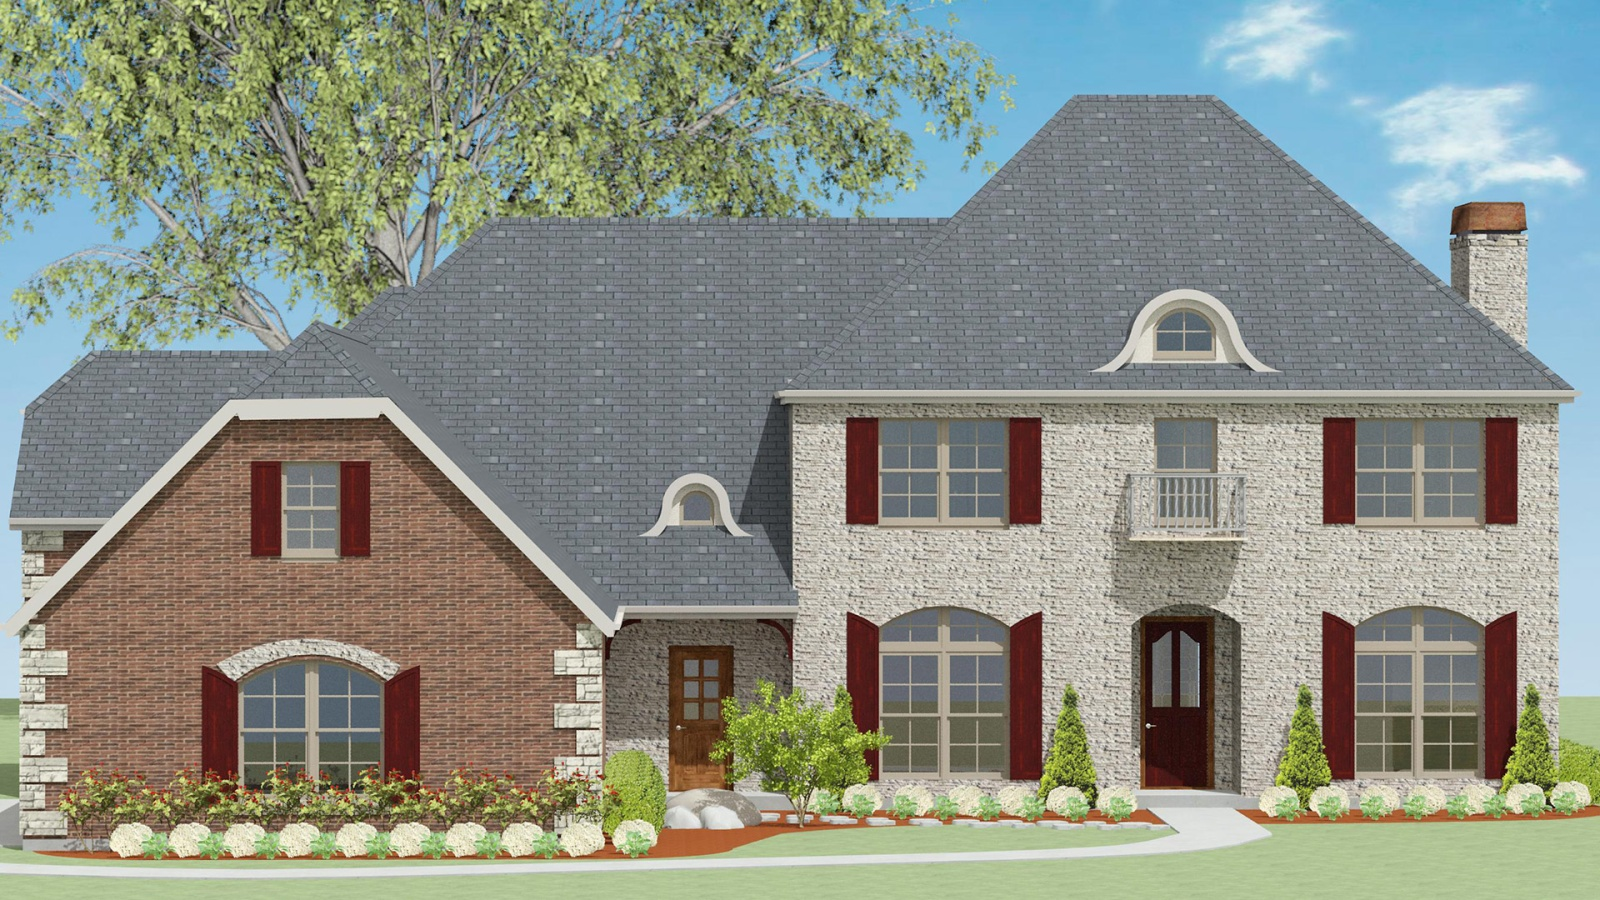 4 Bedrooms Bedrooms, ,4 BathroomsBathrooms,Custom Home,Home Plans,1035